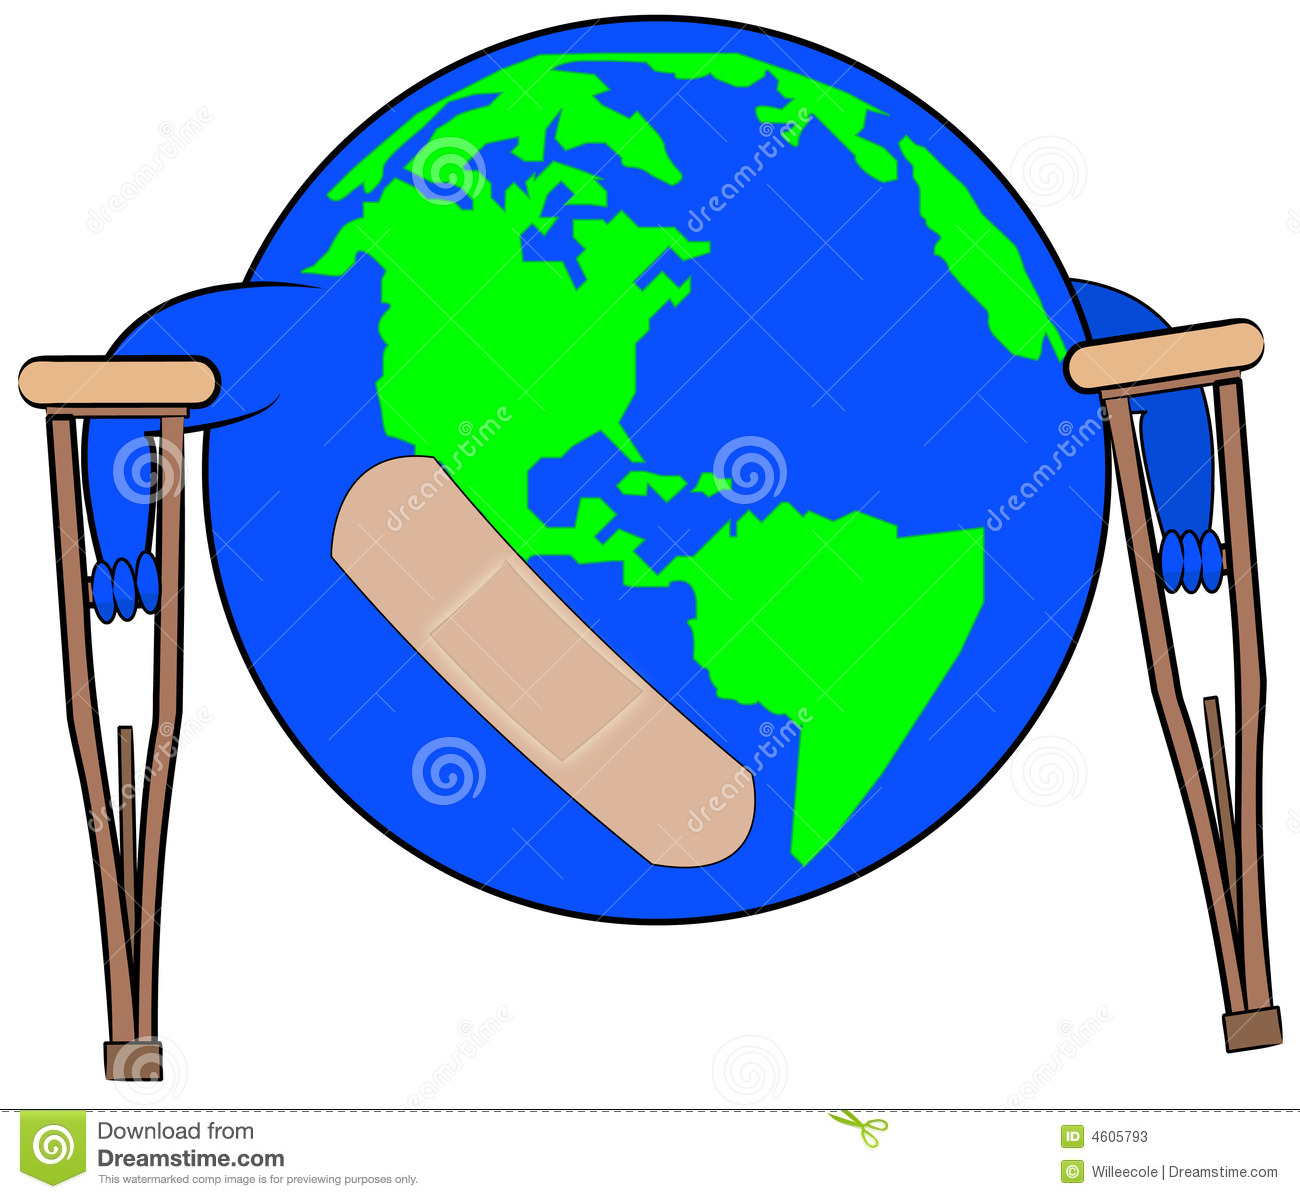 Environmental damage clipart 20